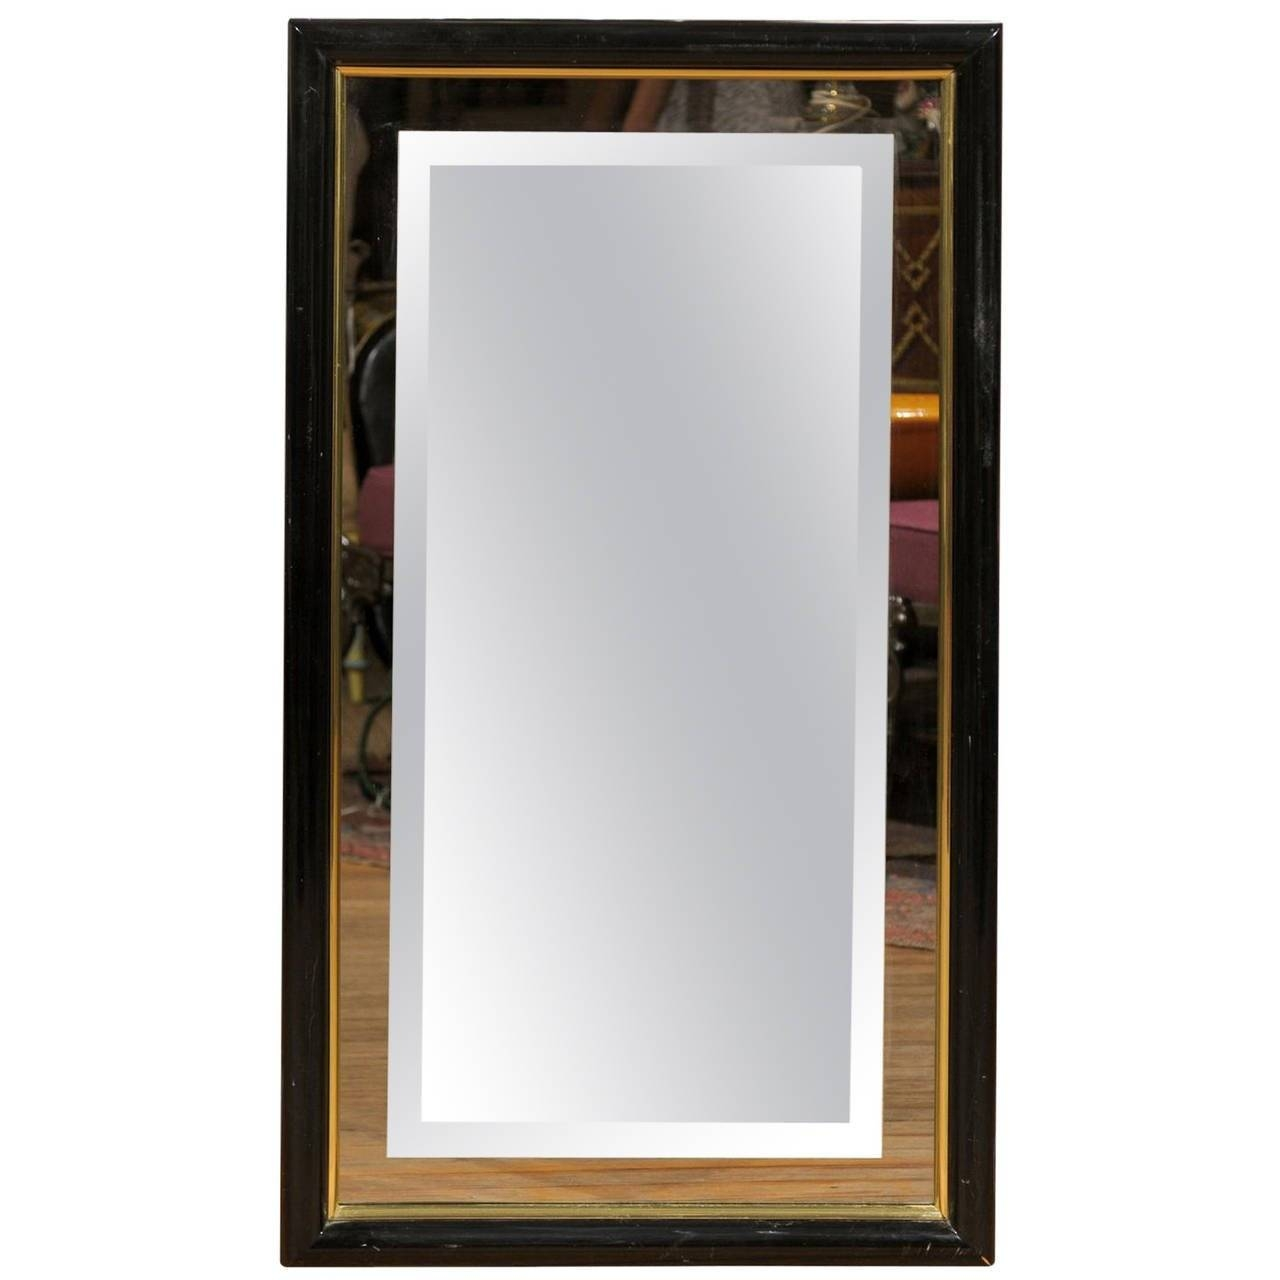 Smoked And Beveled Glass Wall Mirror In A Black And Brass Frame inside Black Bevelled Mirrors (Image 13 of 13)